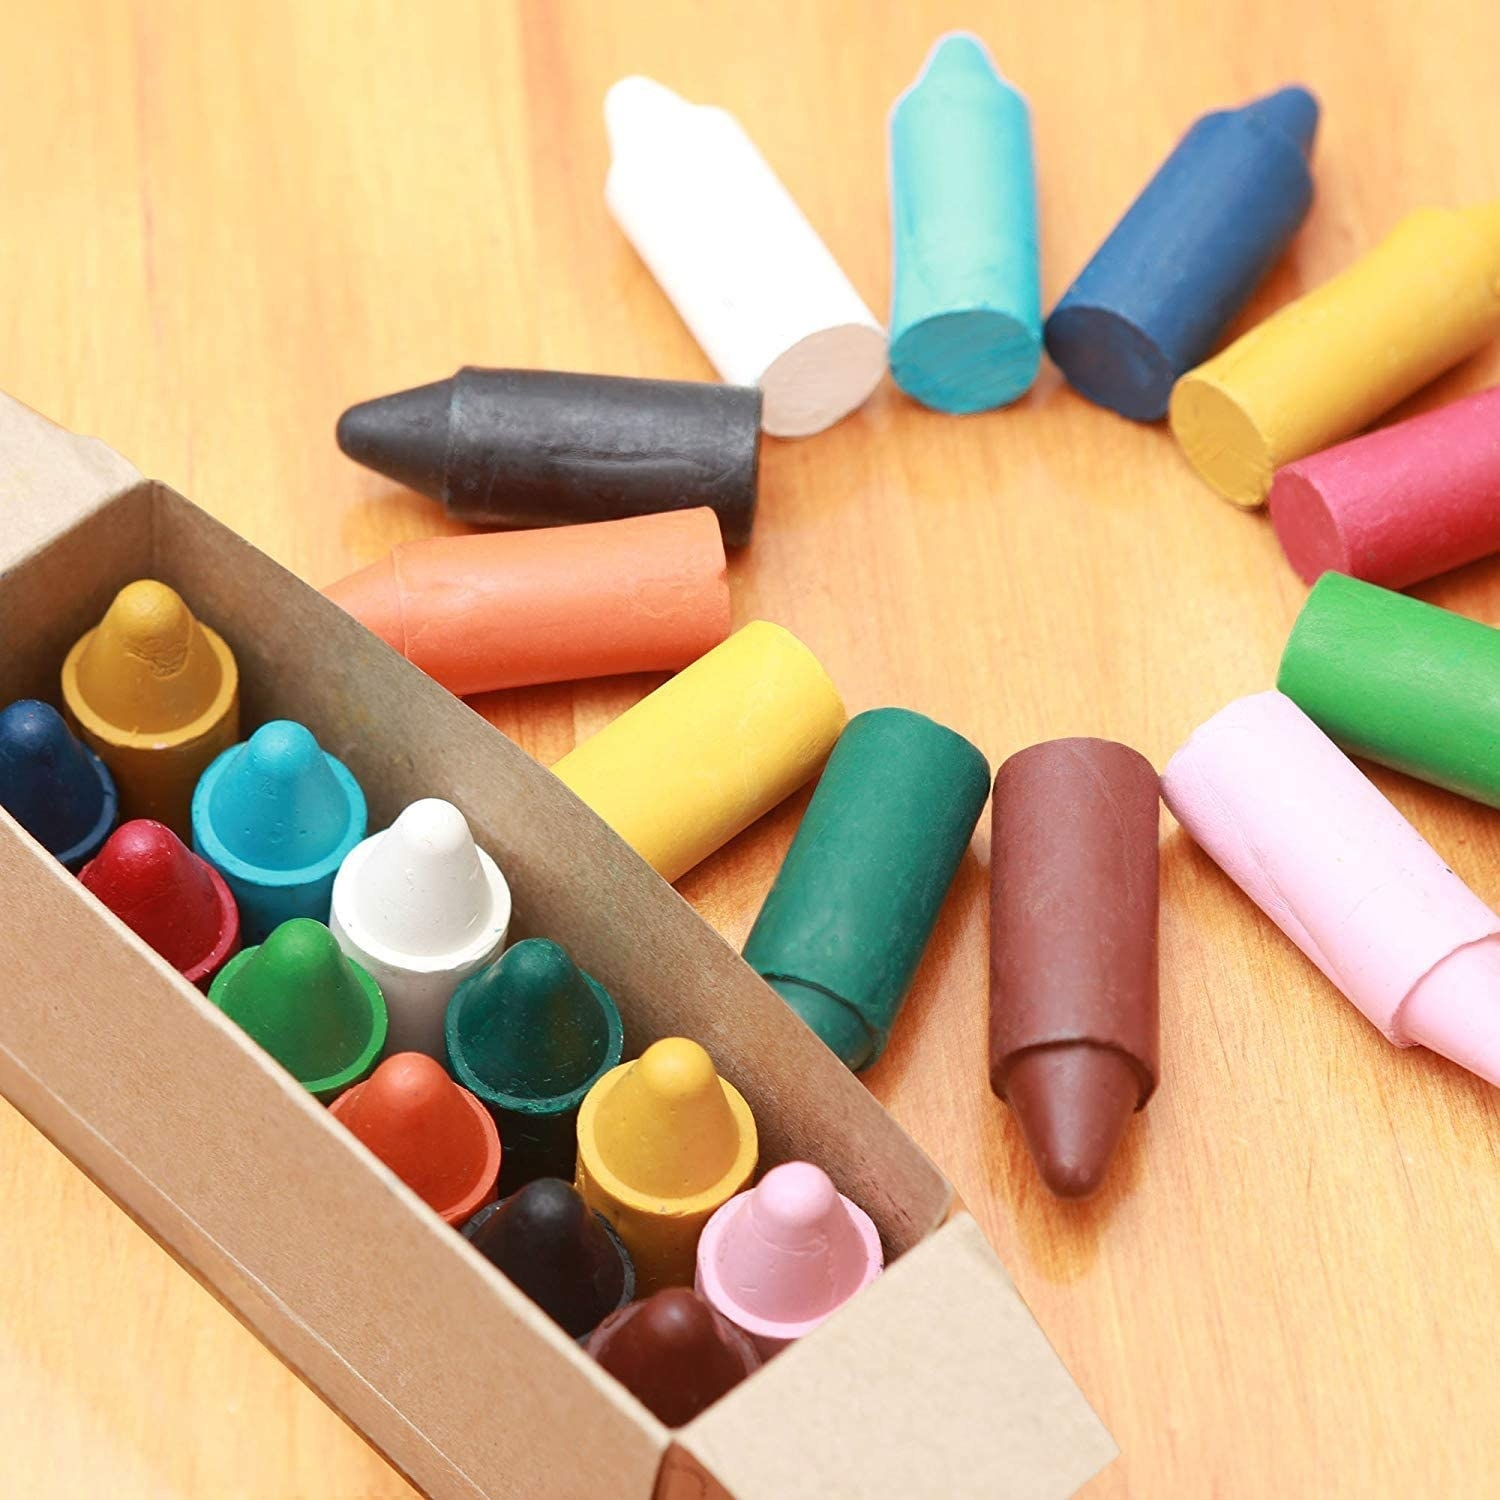 An open box of large, multi-colored crayons with some spread in a circle on a table